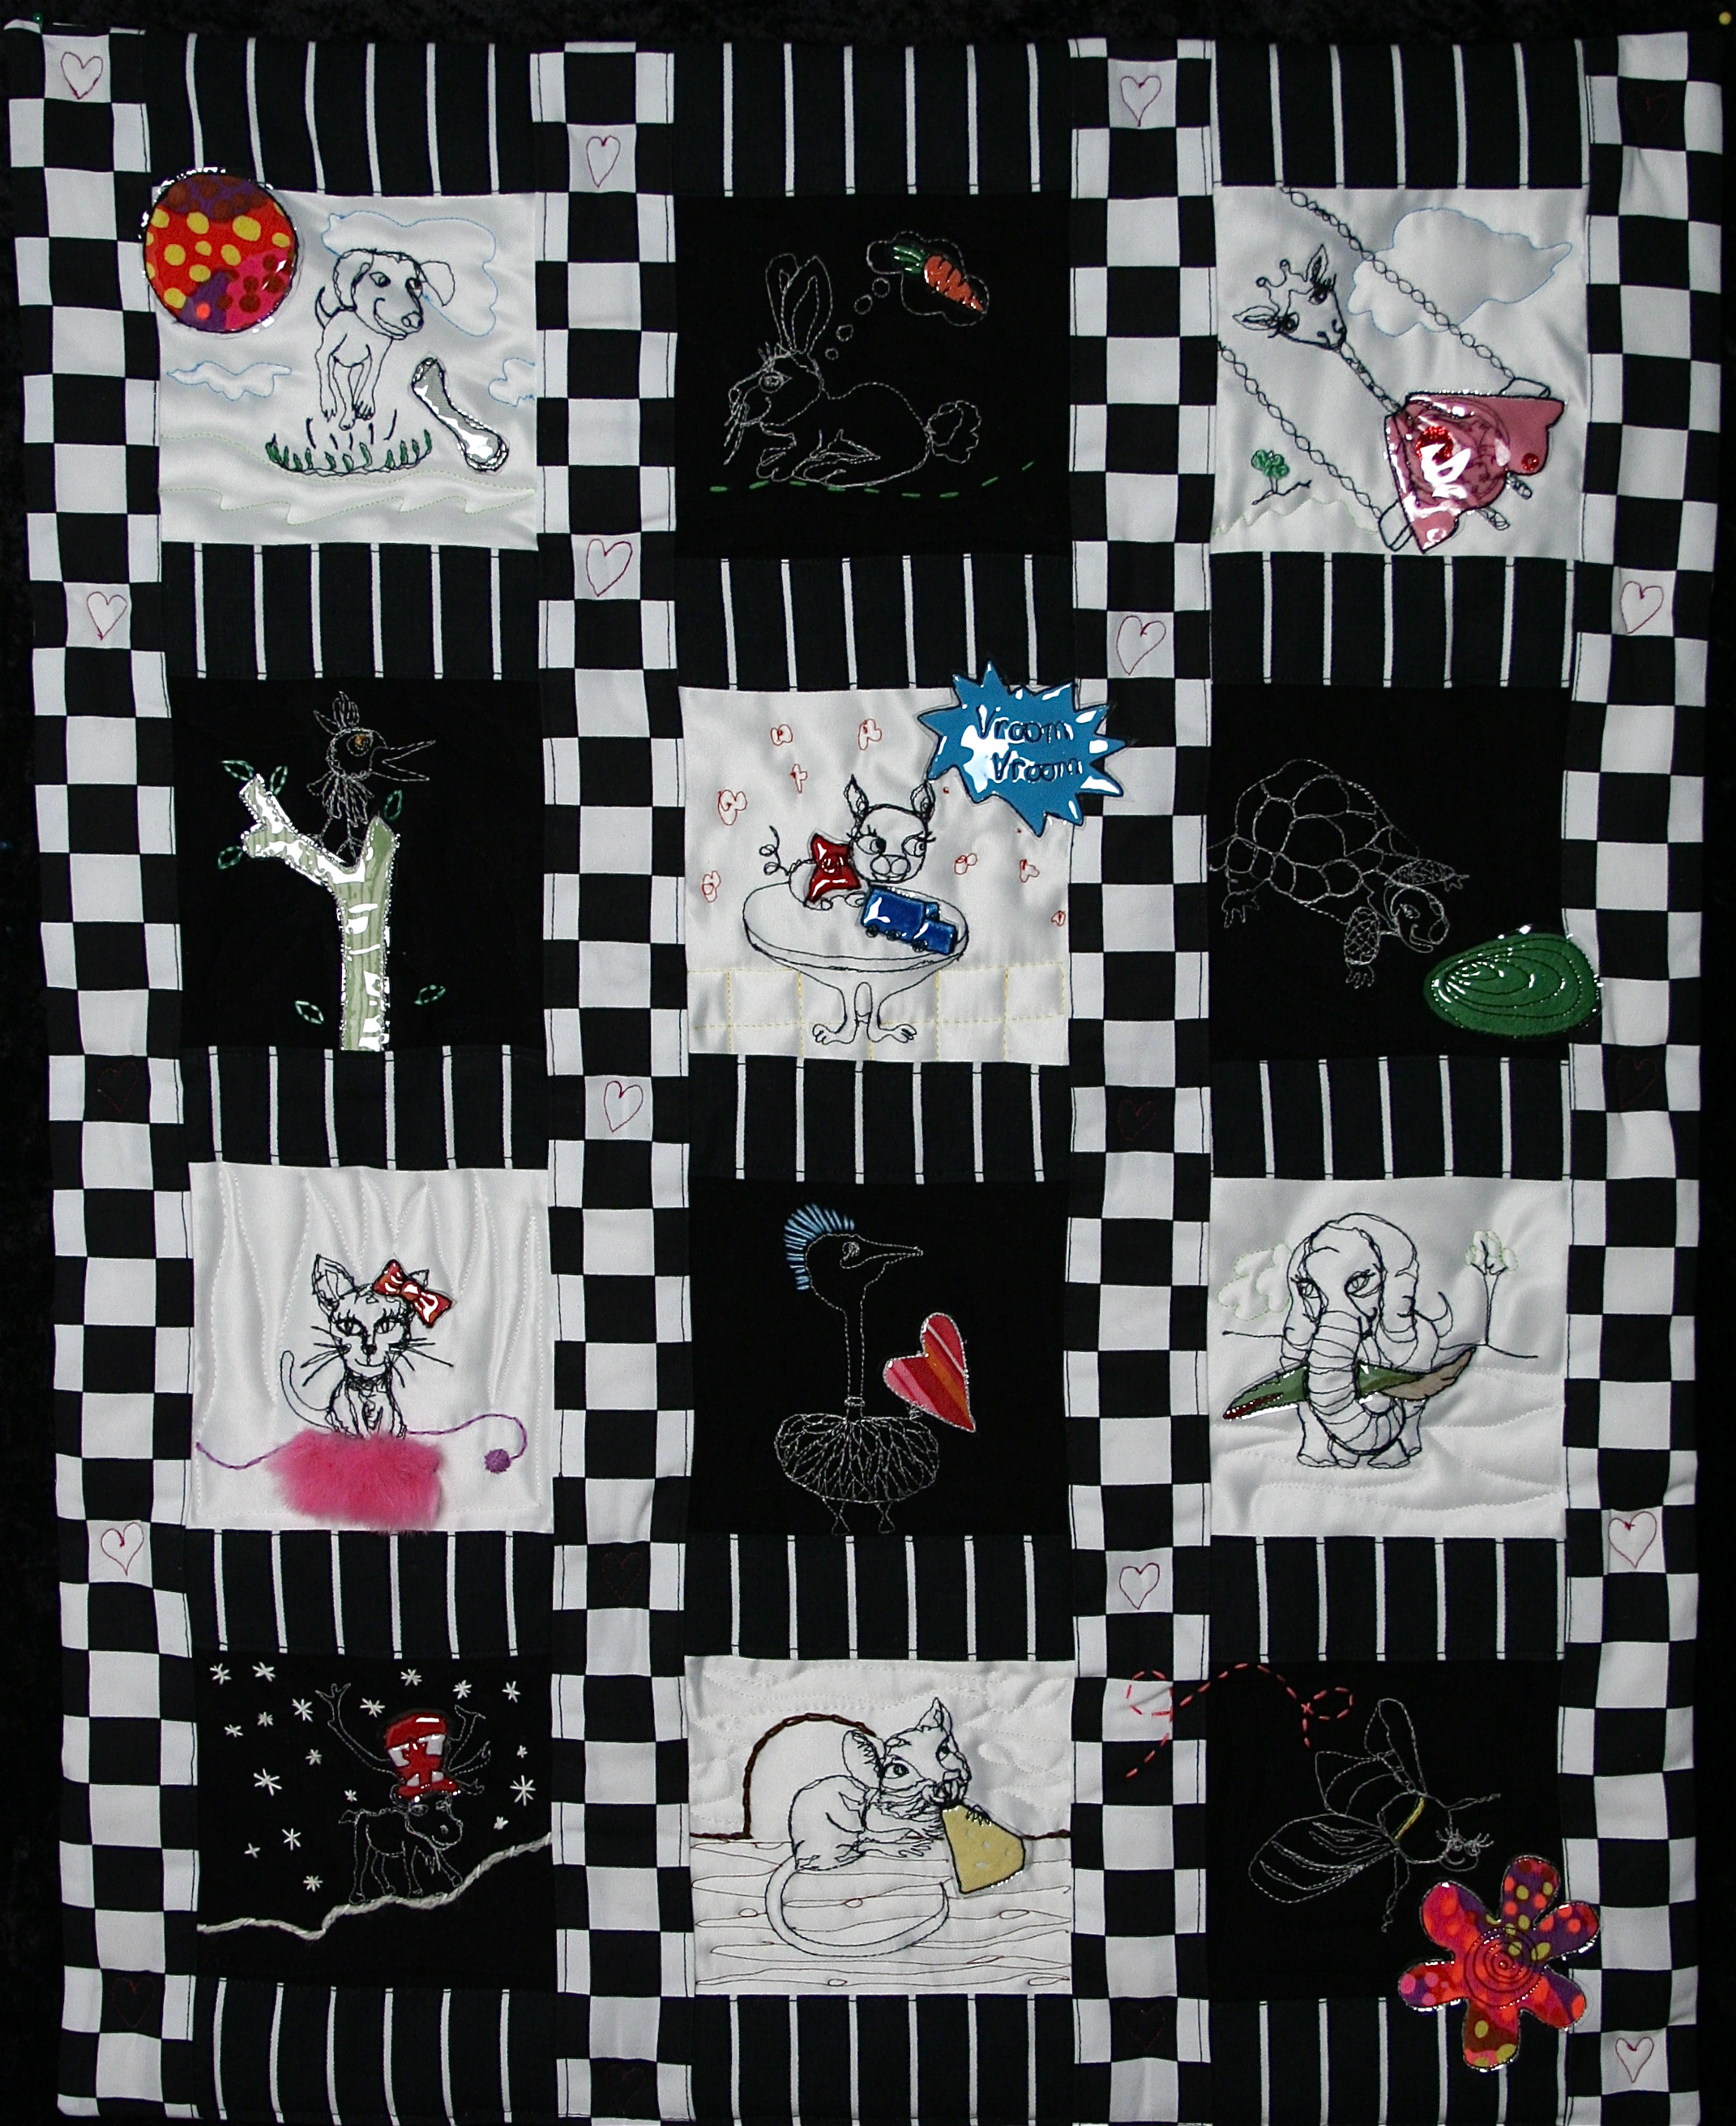 Madoc's Quilt 2009-2010  Free motion stitching, hand embroidery; assorted materials